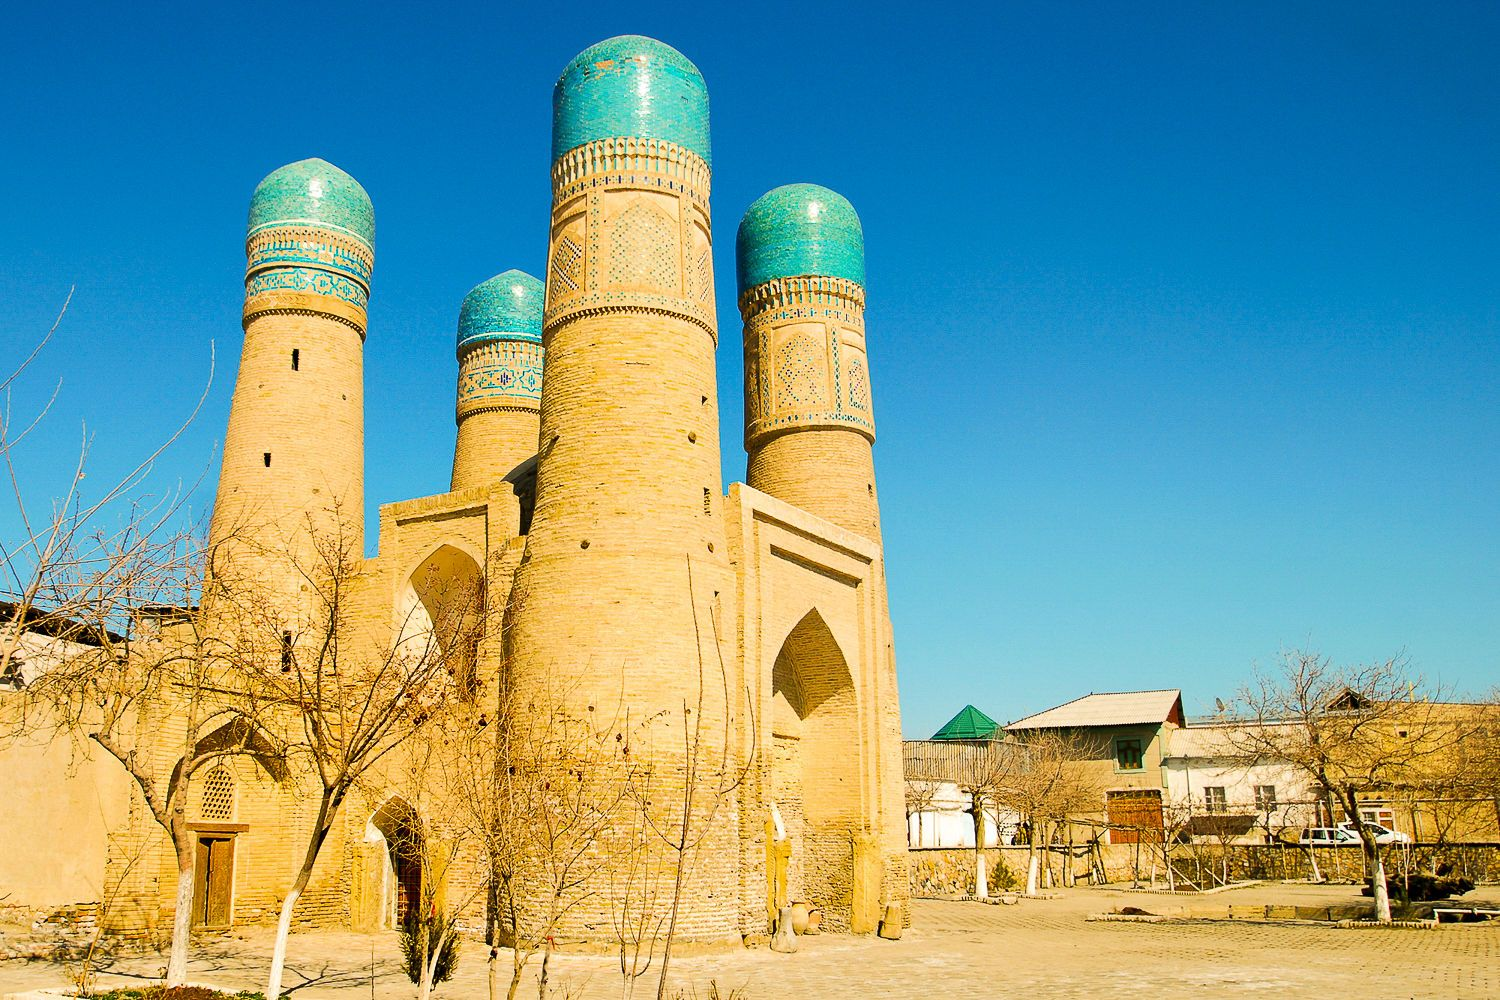 Chor Minor in Bukhara as seen in Central Asian Silk Road Tours